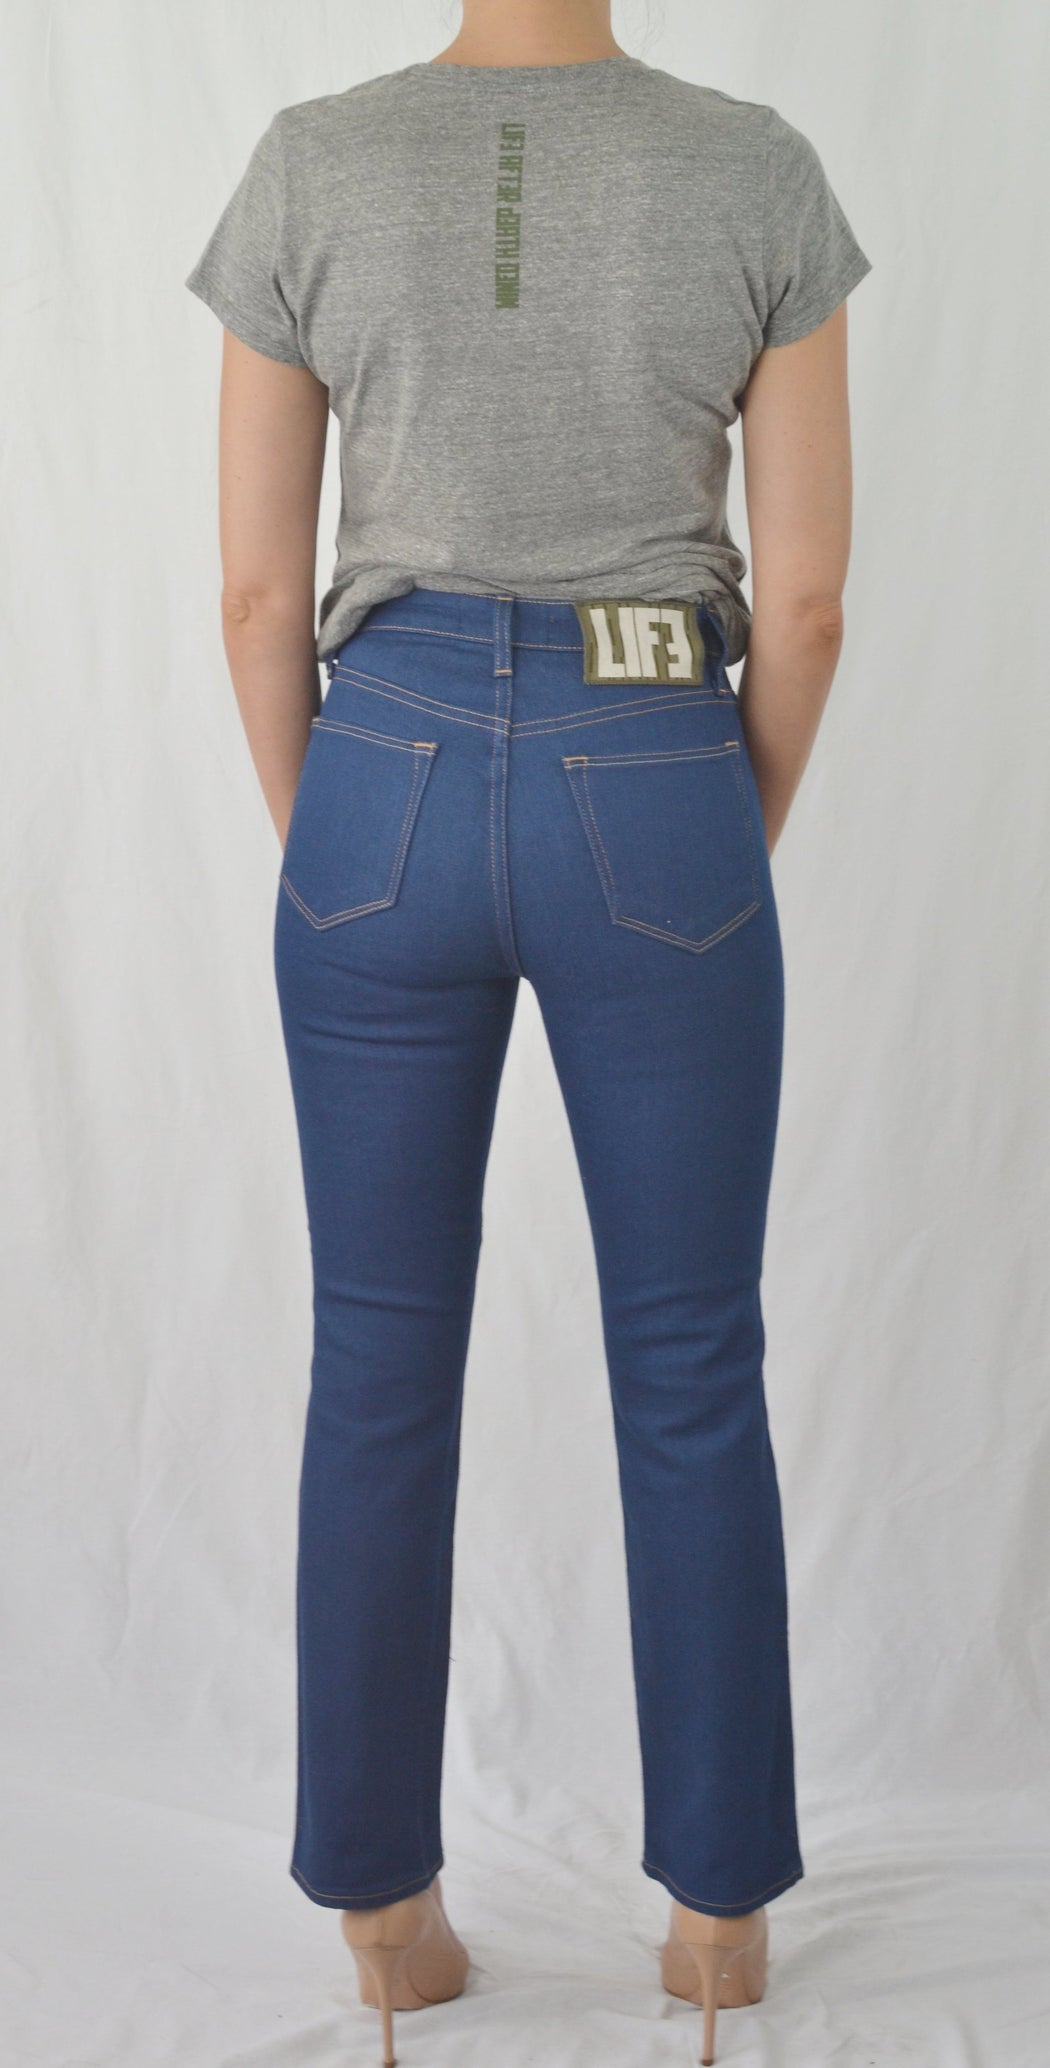 HONESTY HIGH RISE STRAIGHT LEG FIT IN RINSE BLUE